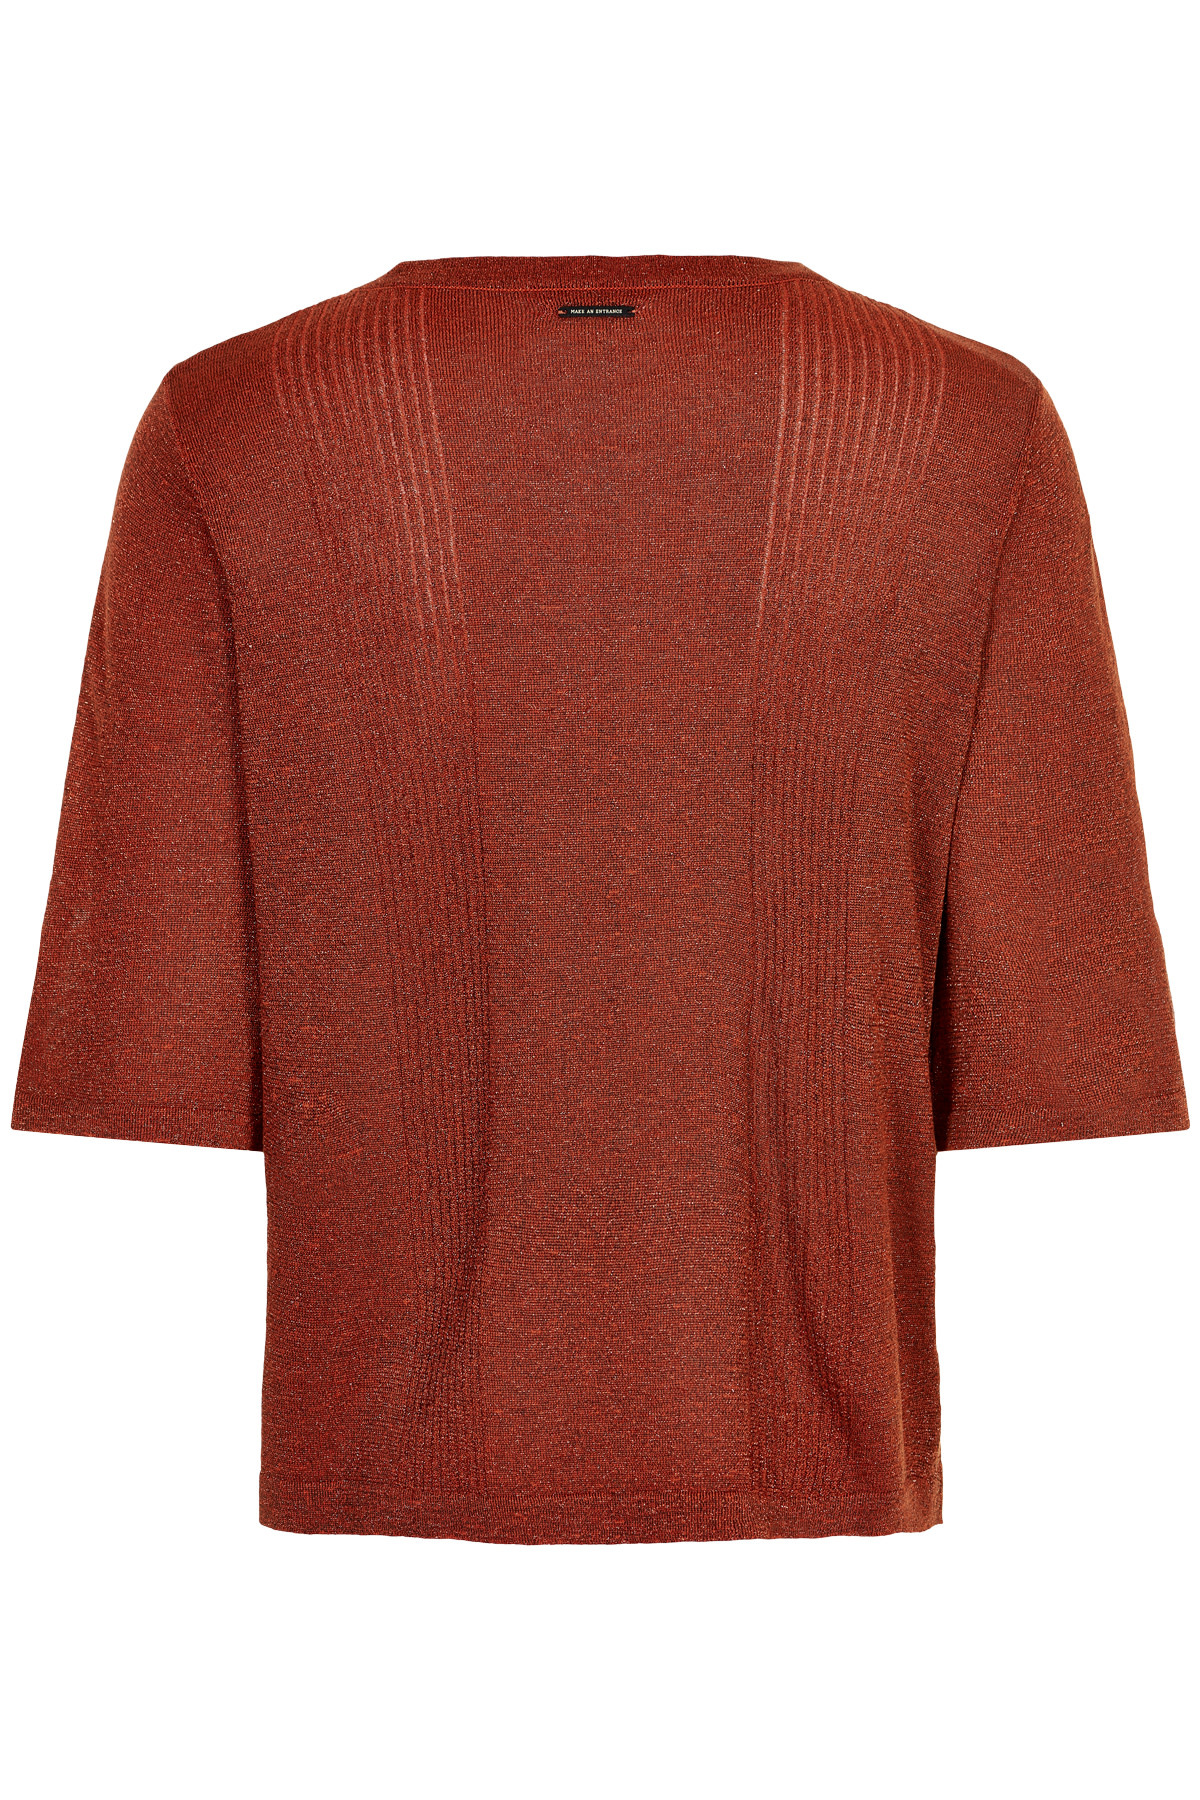 Nümph Annora Pullover - Rood